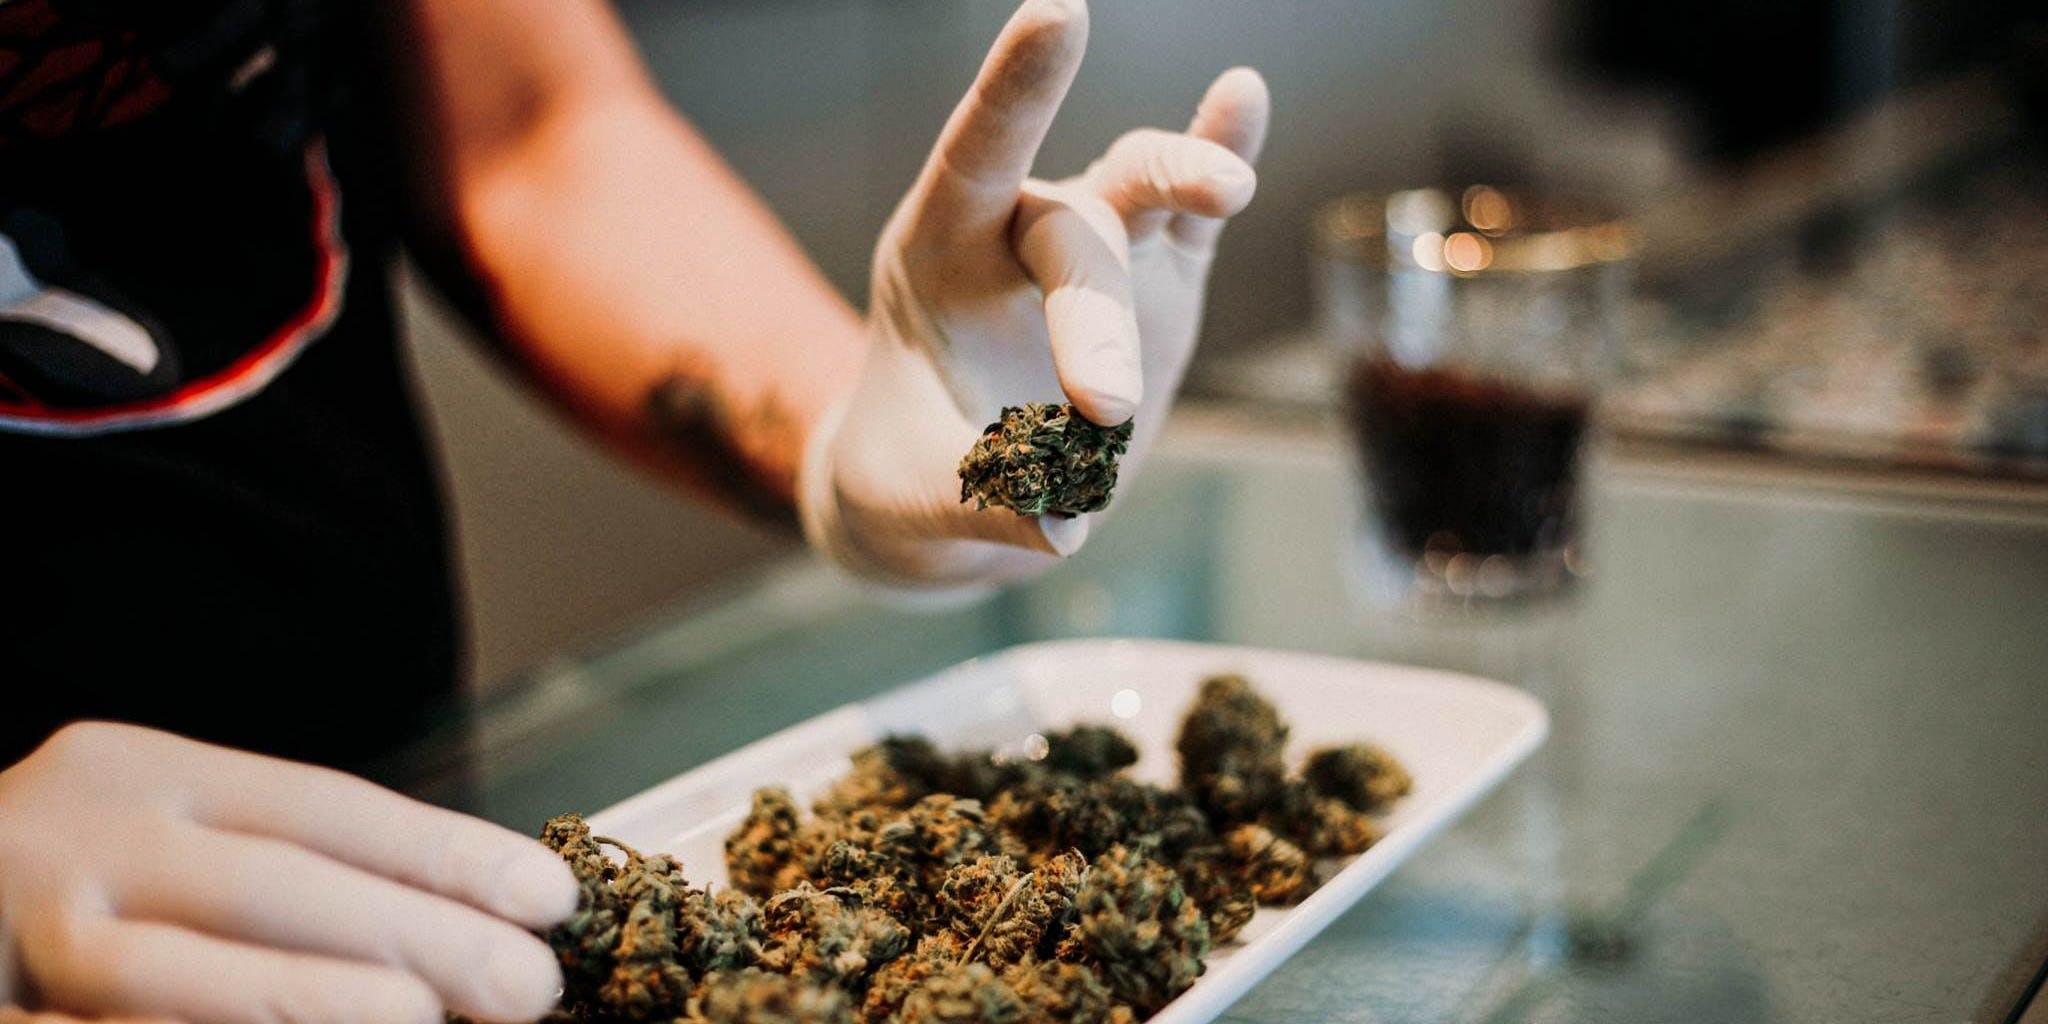 In this article, we feature the best dispensaries in BC. Here a budtender is shown holding a nug